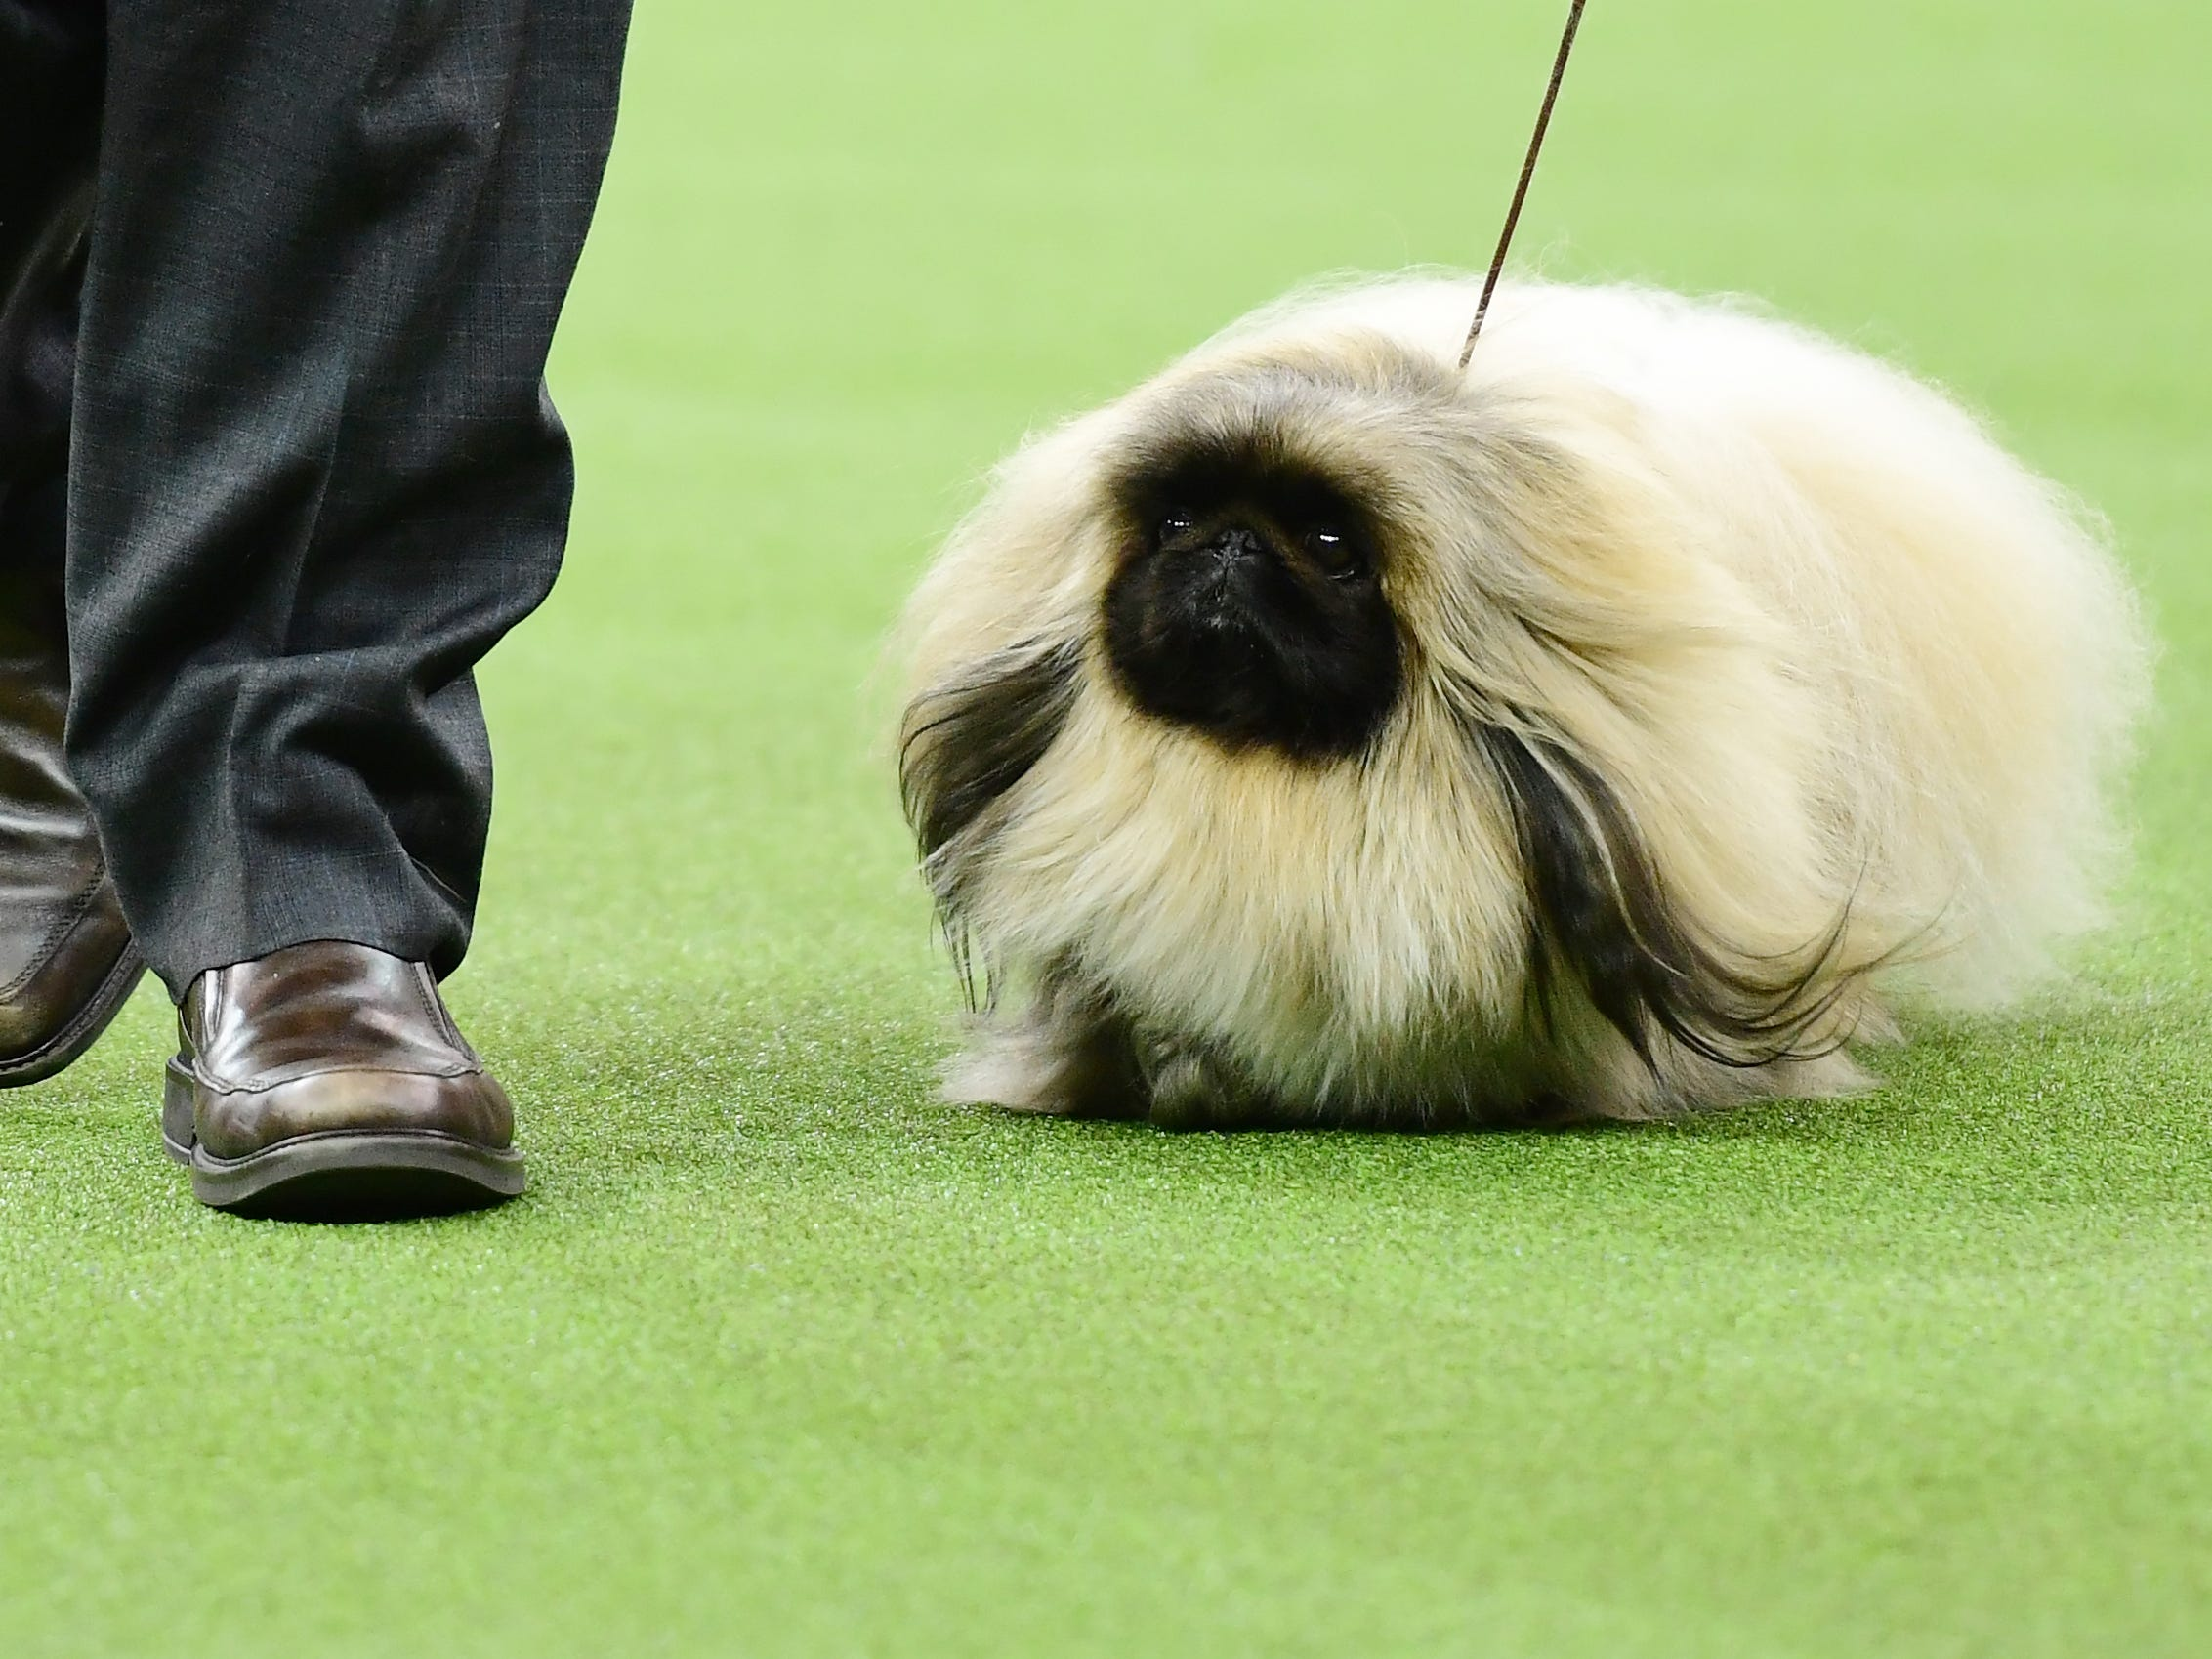 The Pekingese 'Pequest Primrose' and trainer compete during the Toy Group judging at the 143rd Westminster Kennel Club Dog Show at Madison Square Garden.